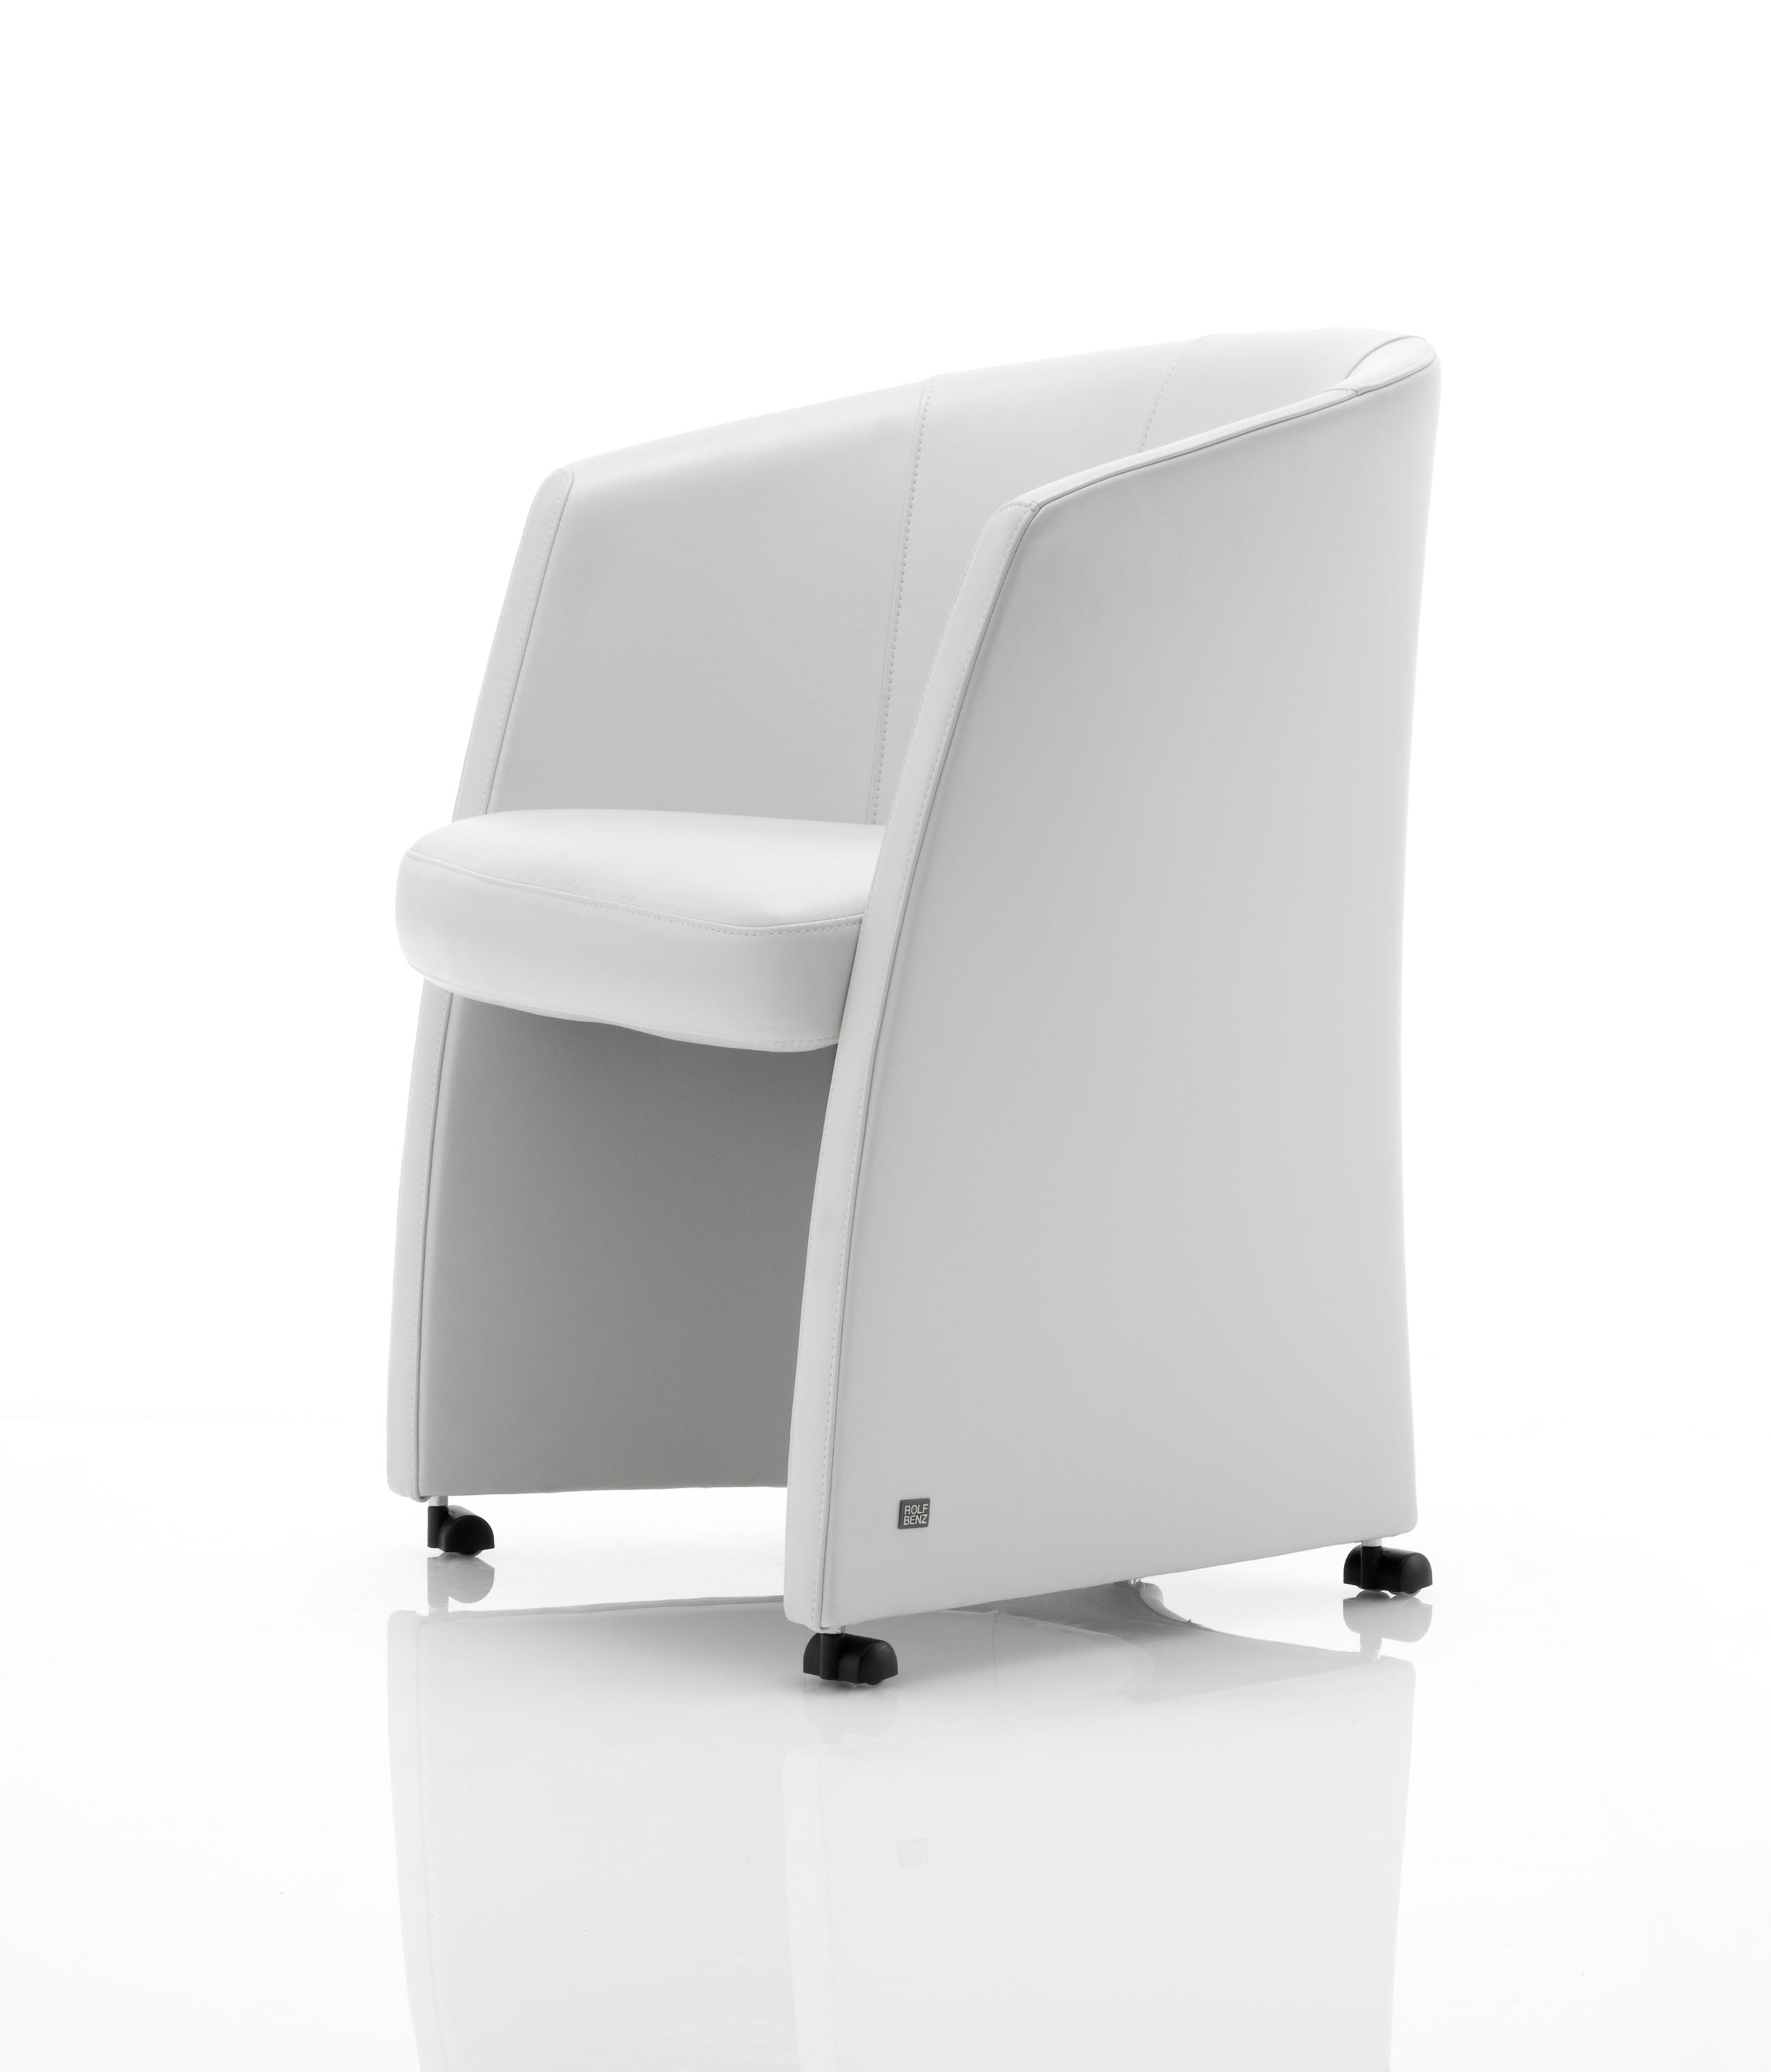 Rolf Benz Draaifauteuil.Rolf Benz 7300 Chairs From Rolf Benz Architonic